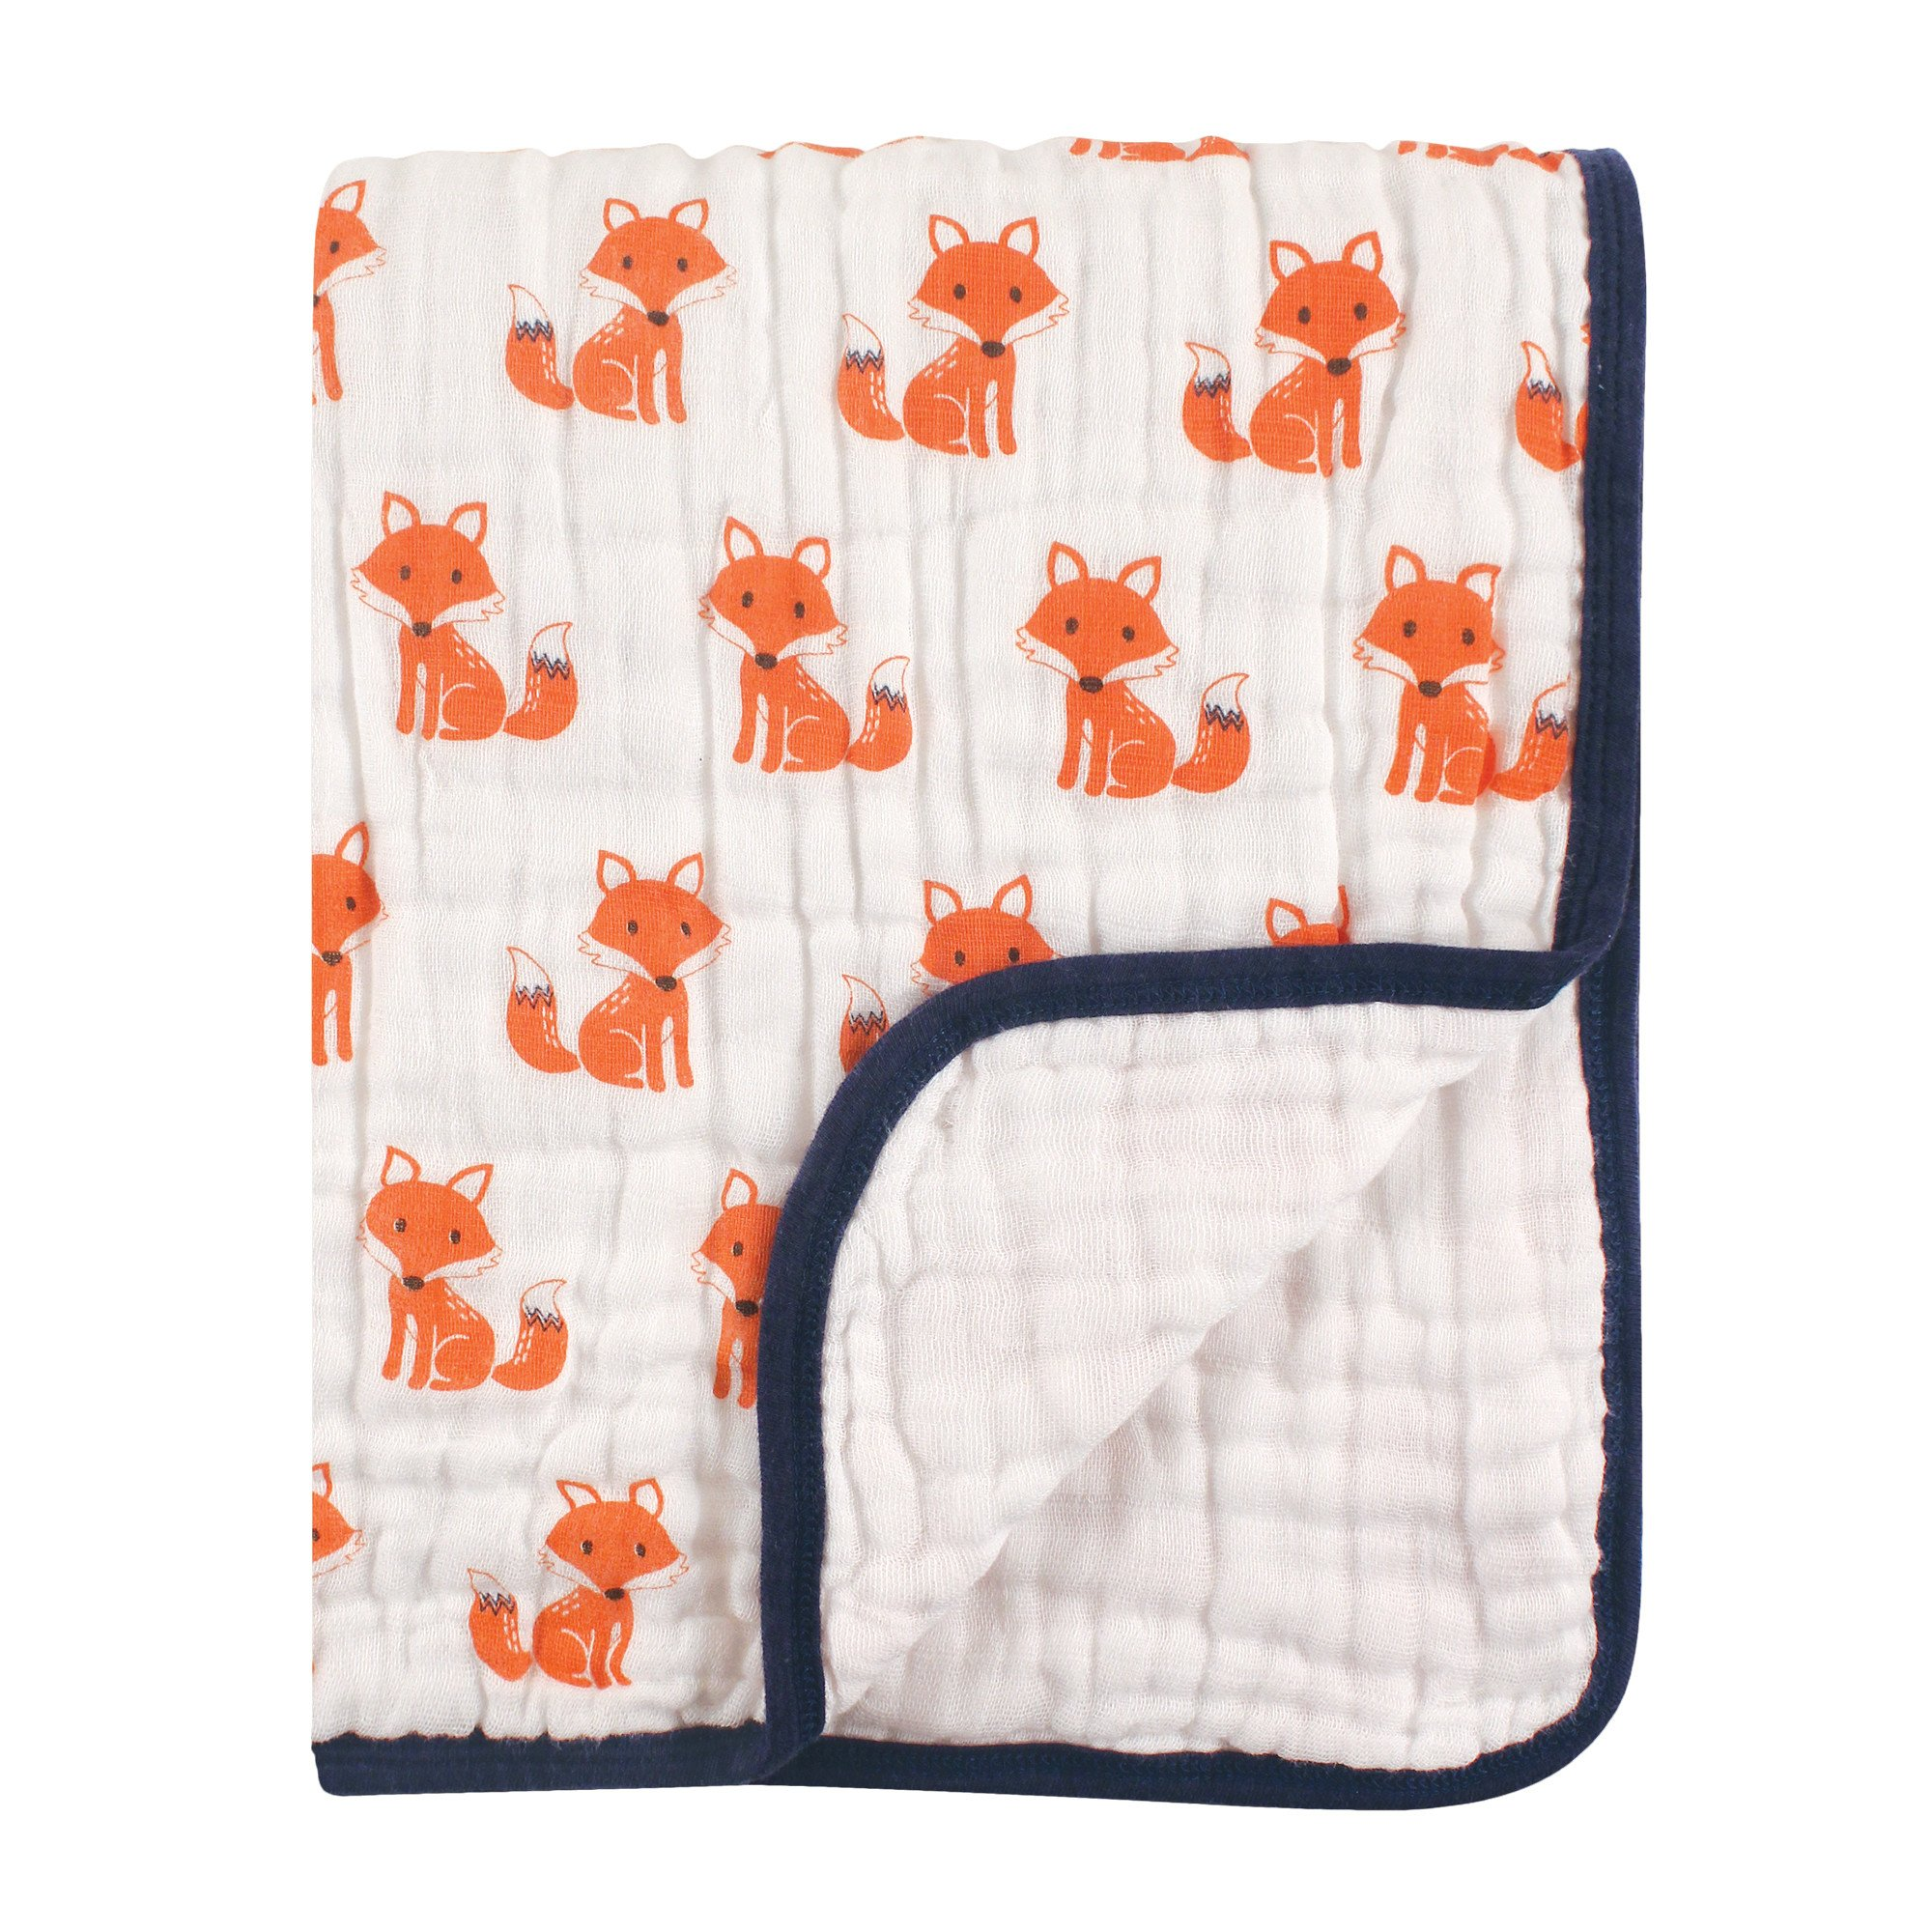 Hudson Baby Four Layer Muslin Tranquility Blanket, Foxes, One Size by Hudson Baby